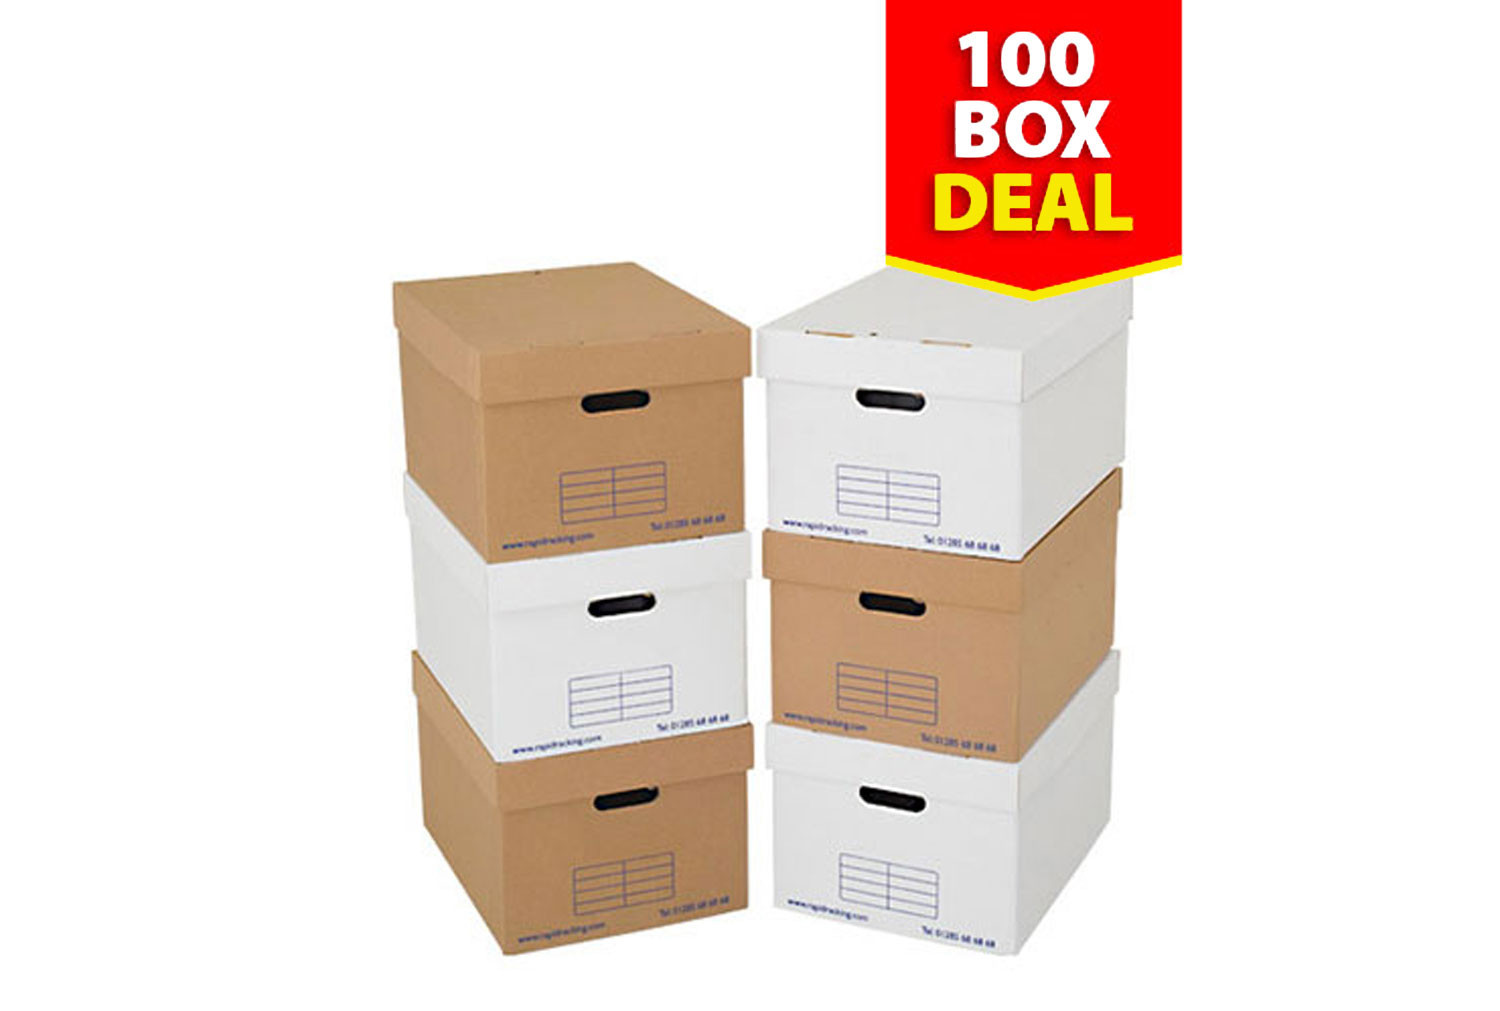 Archive Storage Boxes (100 Pack)